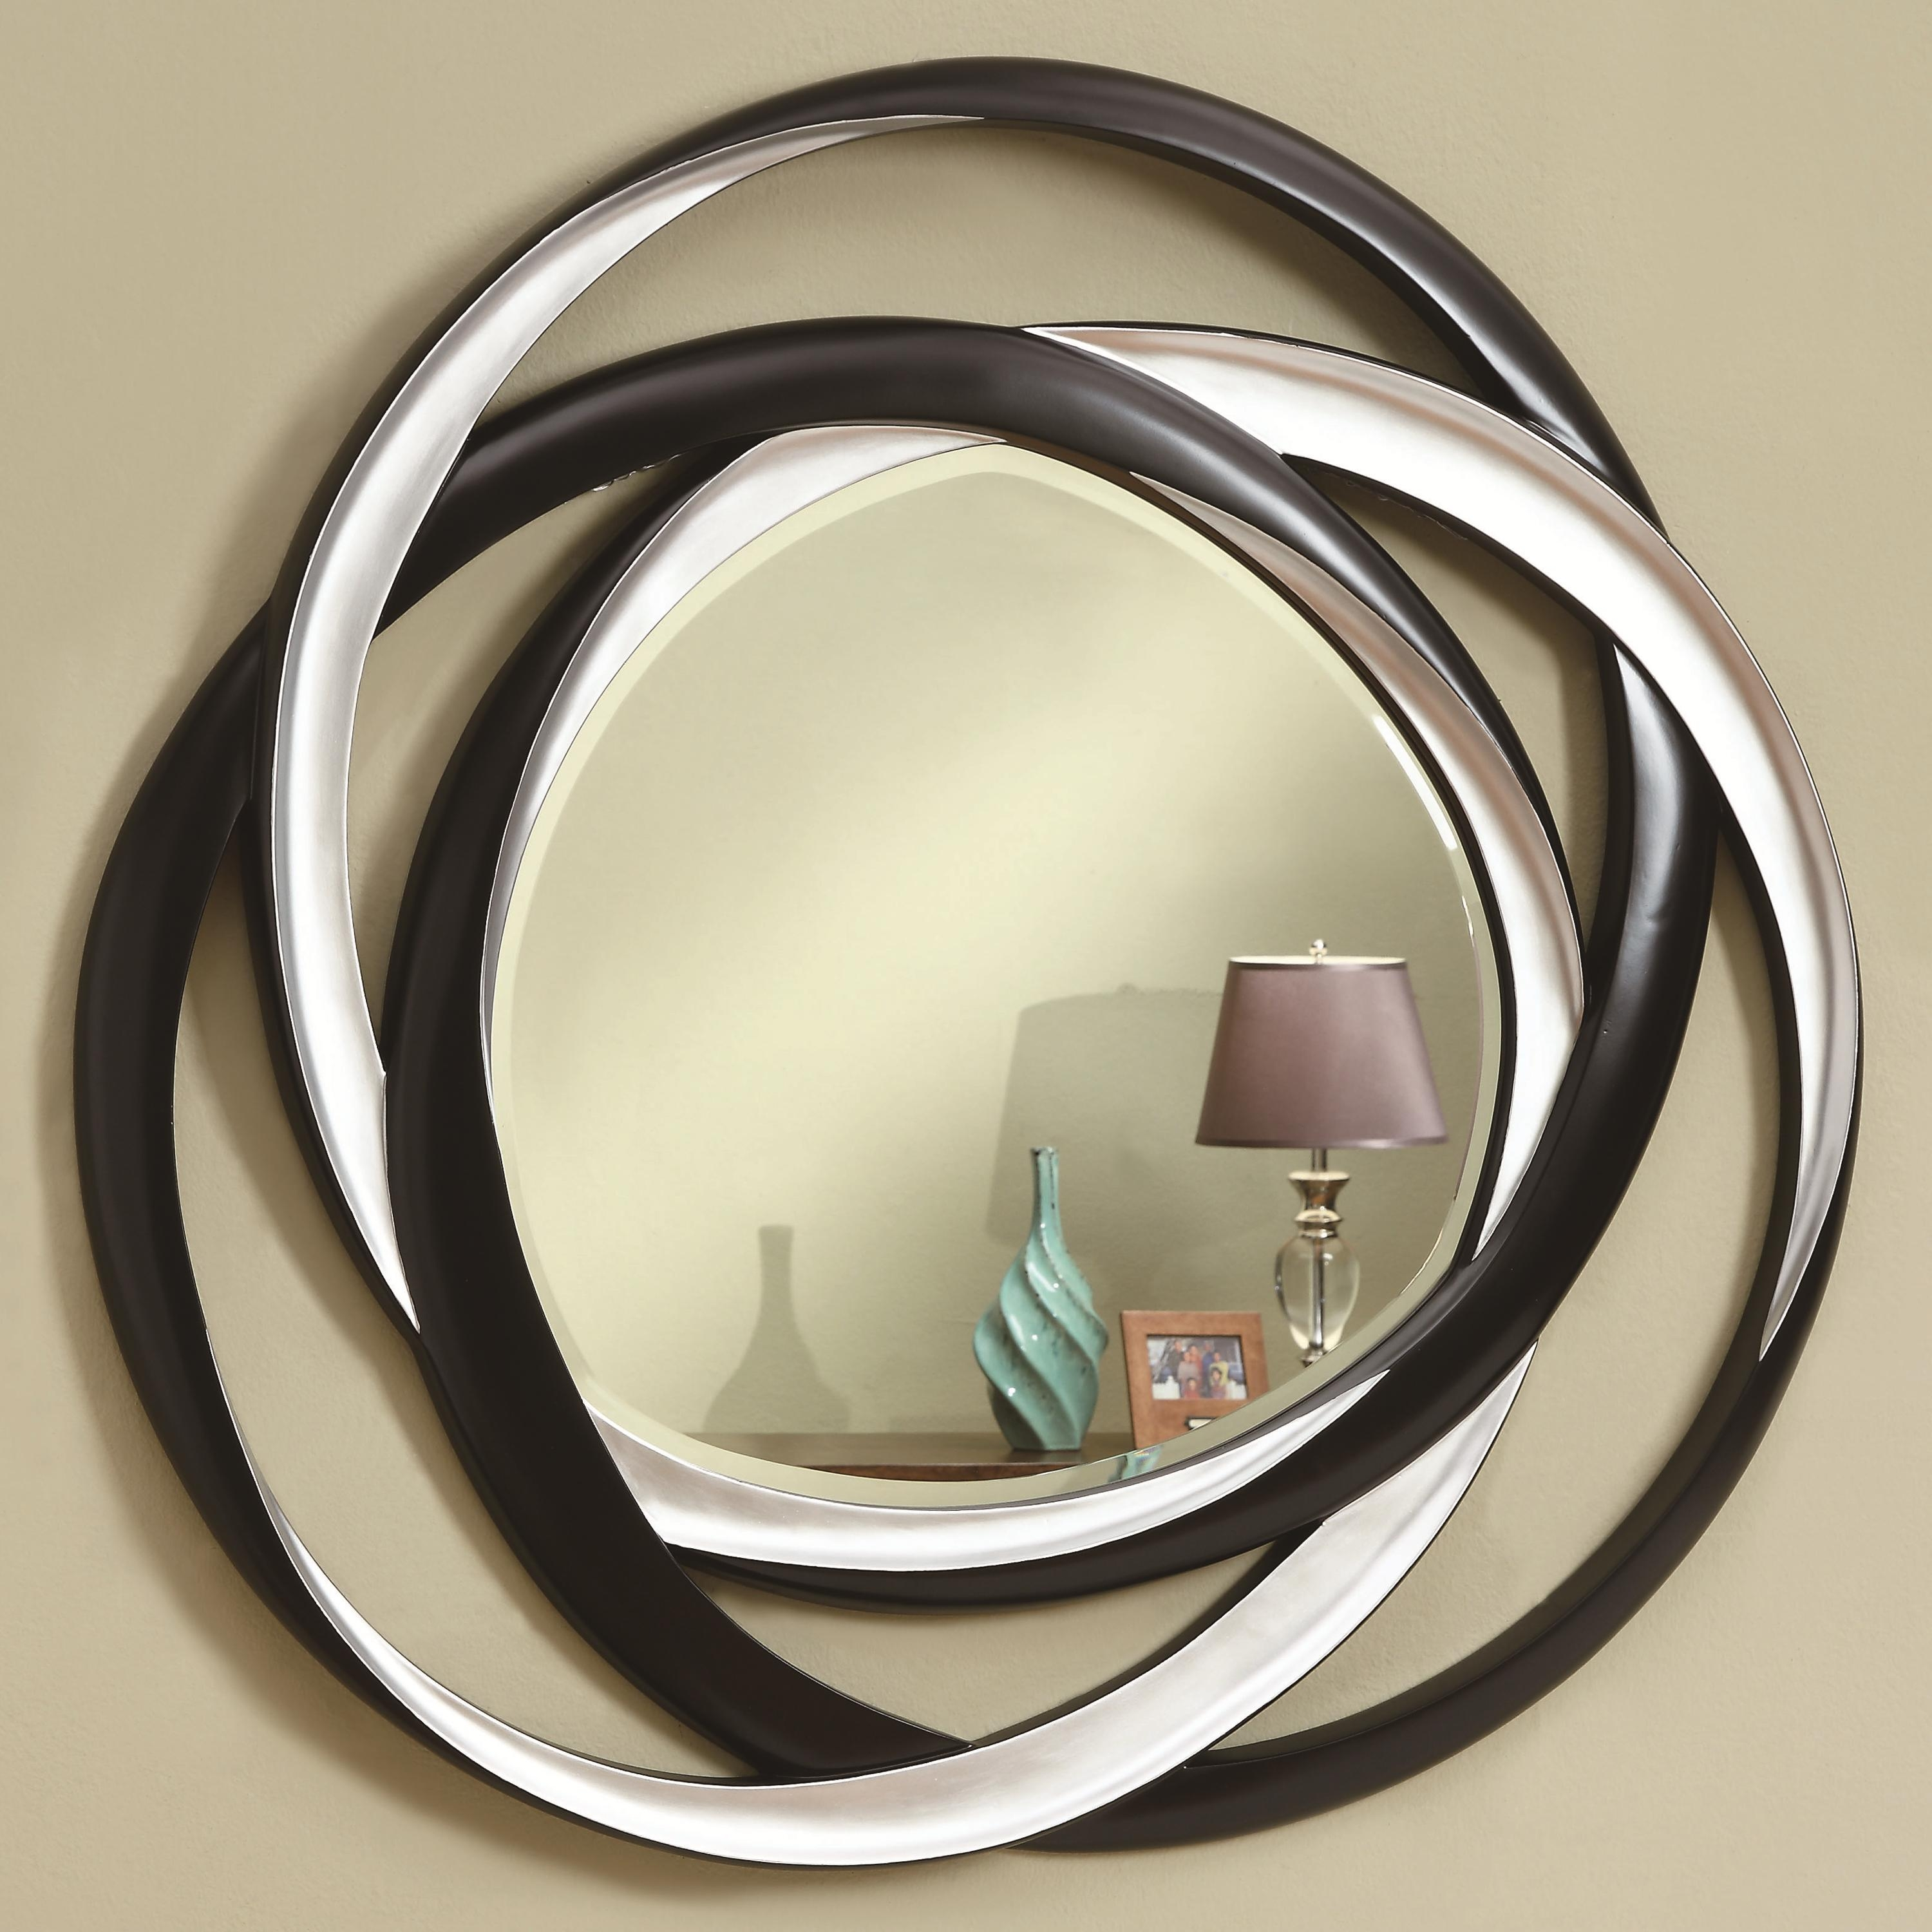 Contemporary Mirrors For Living Room 8988 Pertaining To Contempory Mirrors (Image 2 of 15)